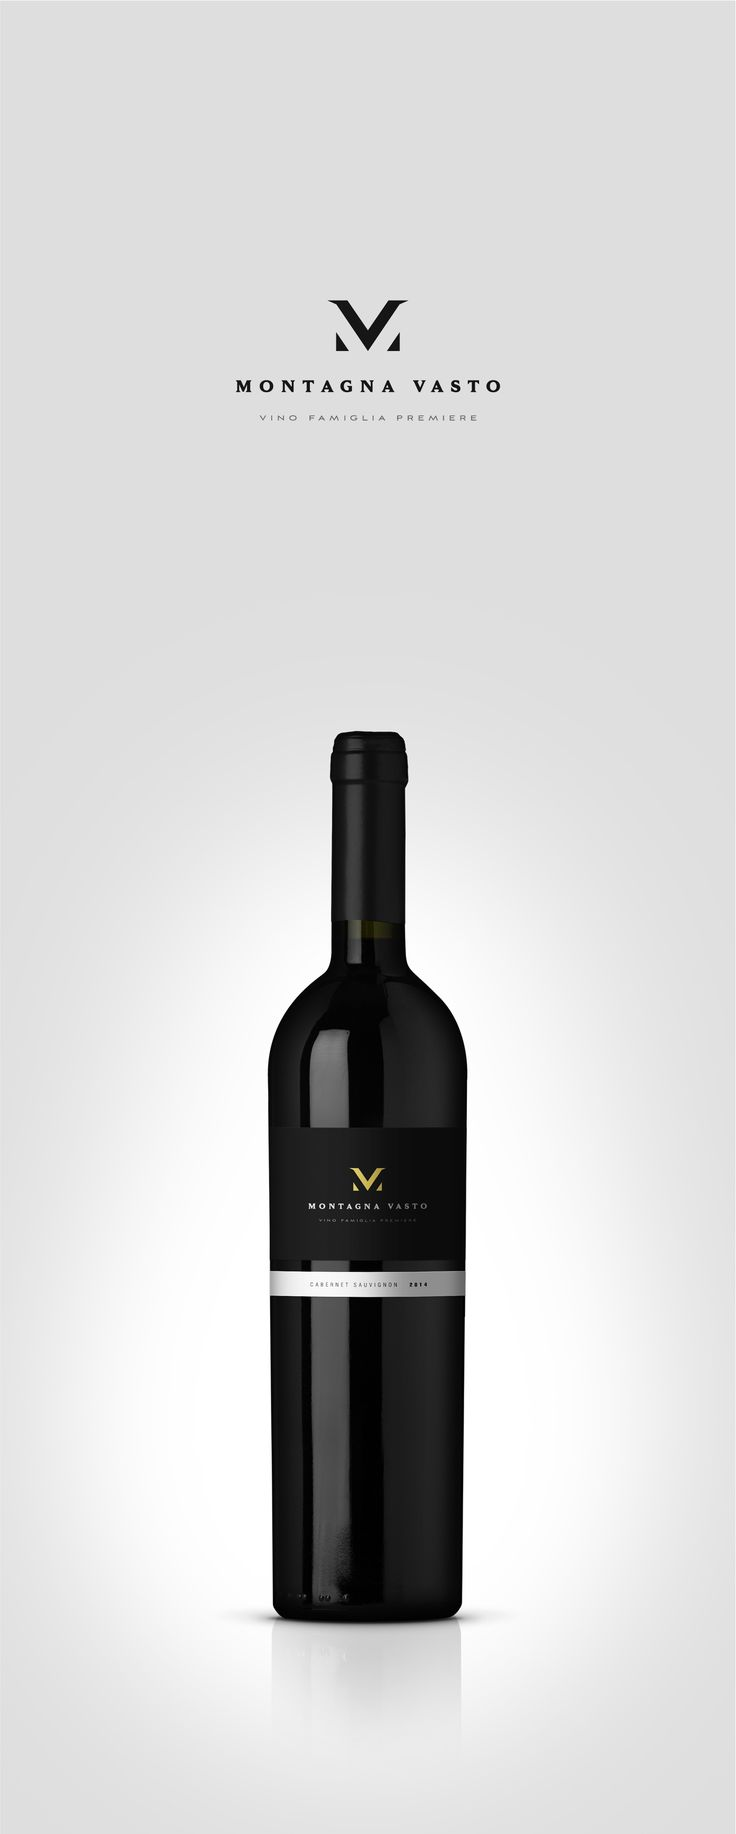 Montagna Vasto is a new wine brand , from Margaret River, Western Australia. The name comes from the where, the Credaro Family originates from (Montagna, Italy) and the Borrello Family (Vasto, Italy).